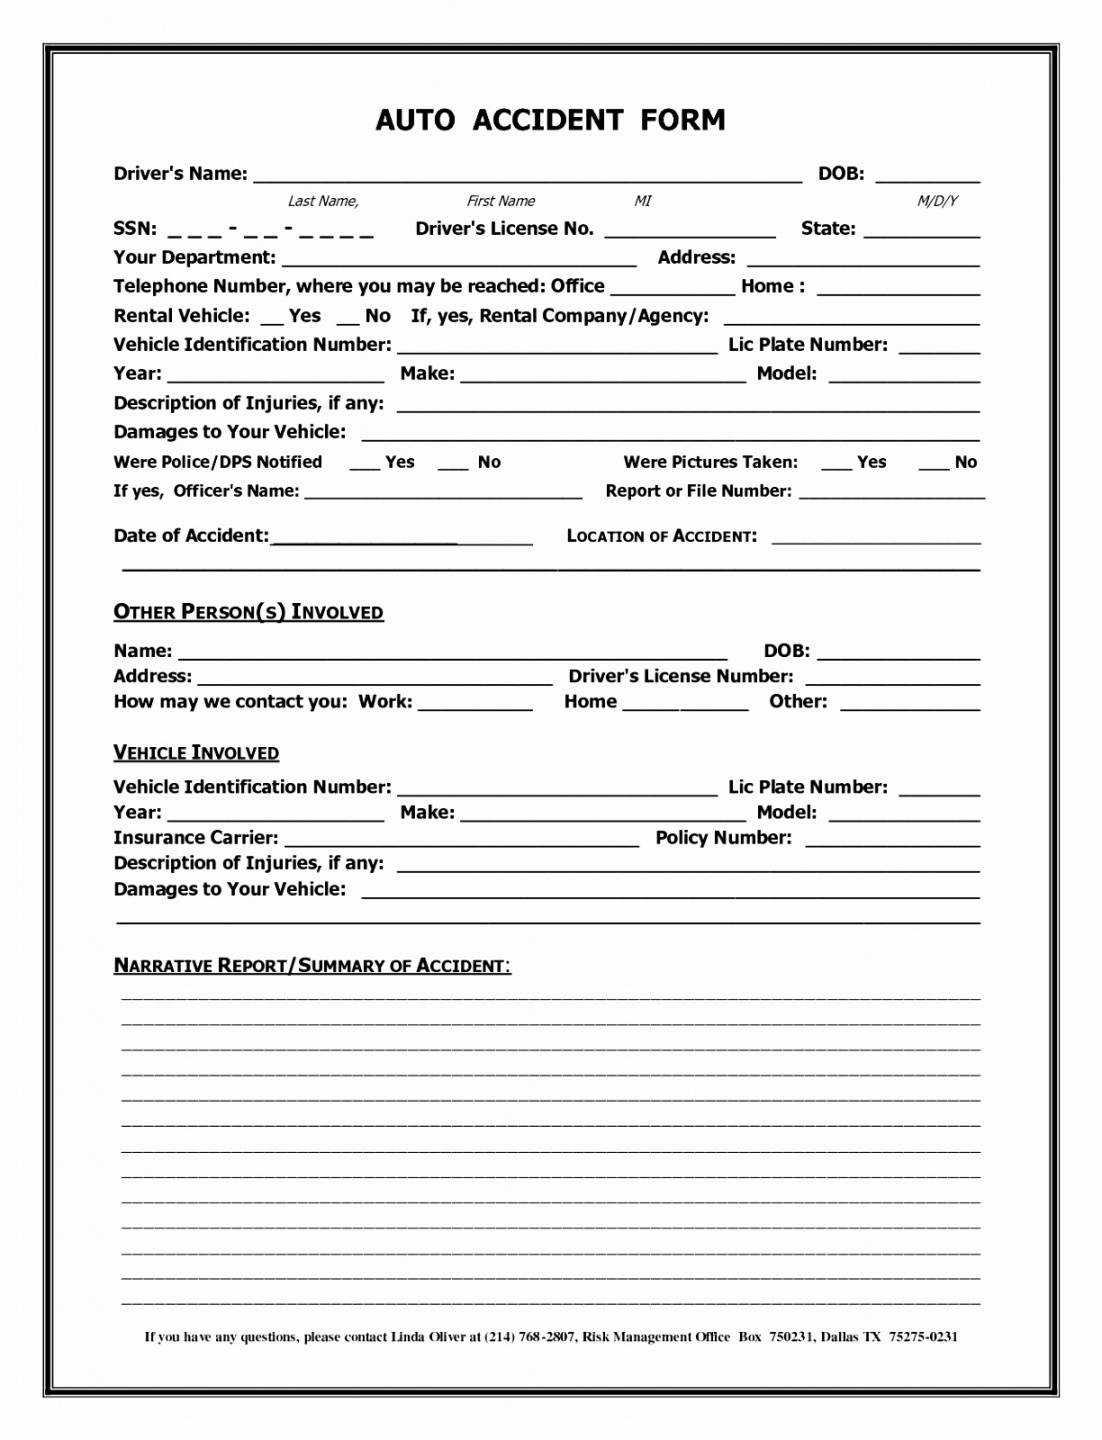 004 Template Ideas Accident Reporting Form Report Uk Of Throughout Accident Report Form Template Uk